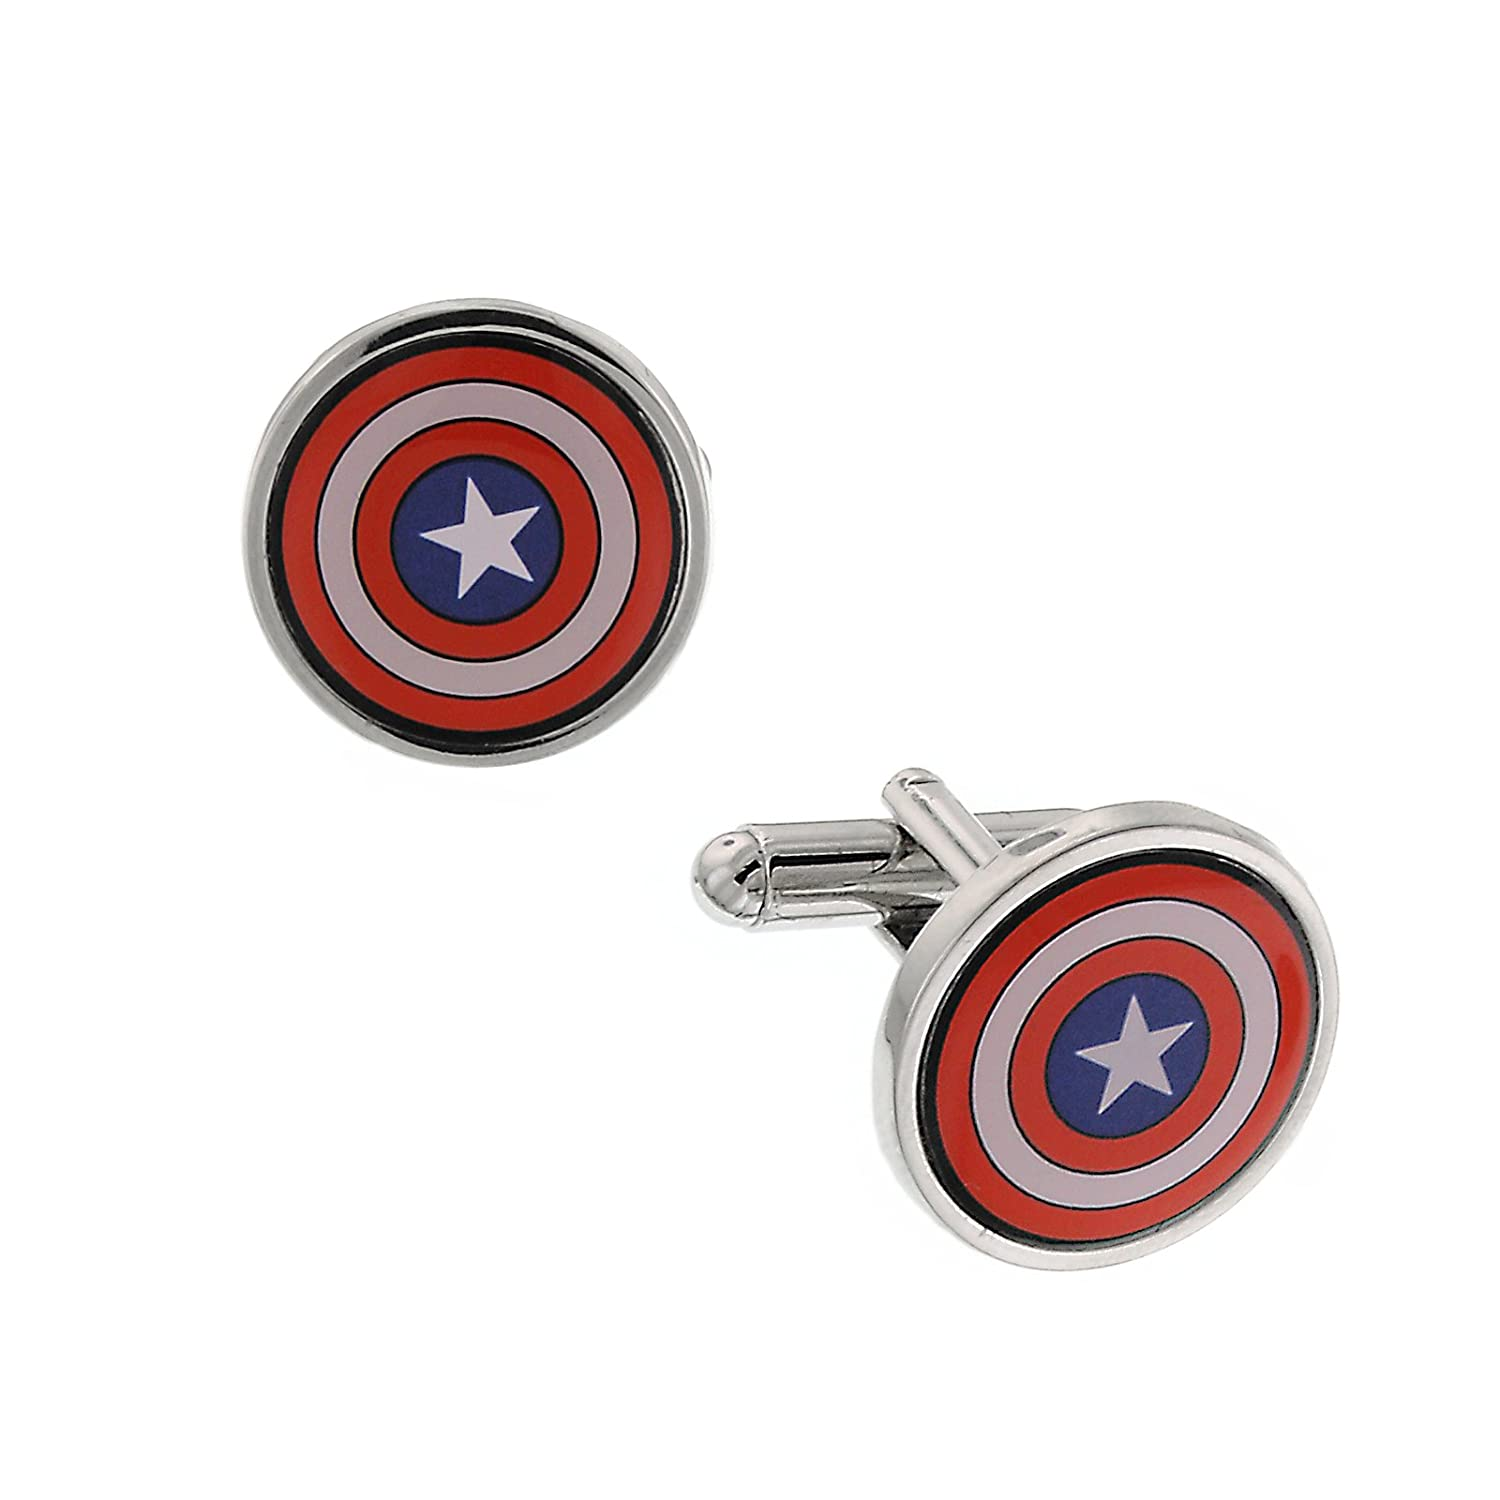 Captain America Freedom Cufflinks Officially Licensed by MARVEL + Comic Con Exclusive